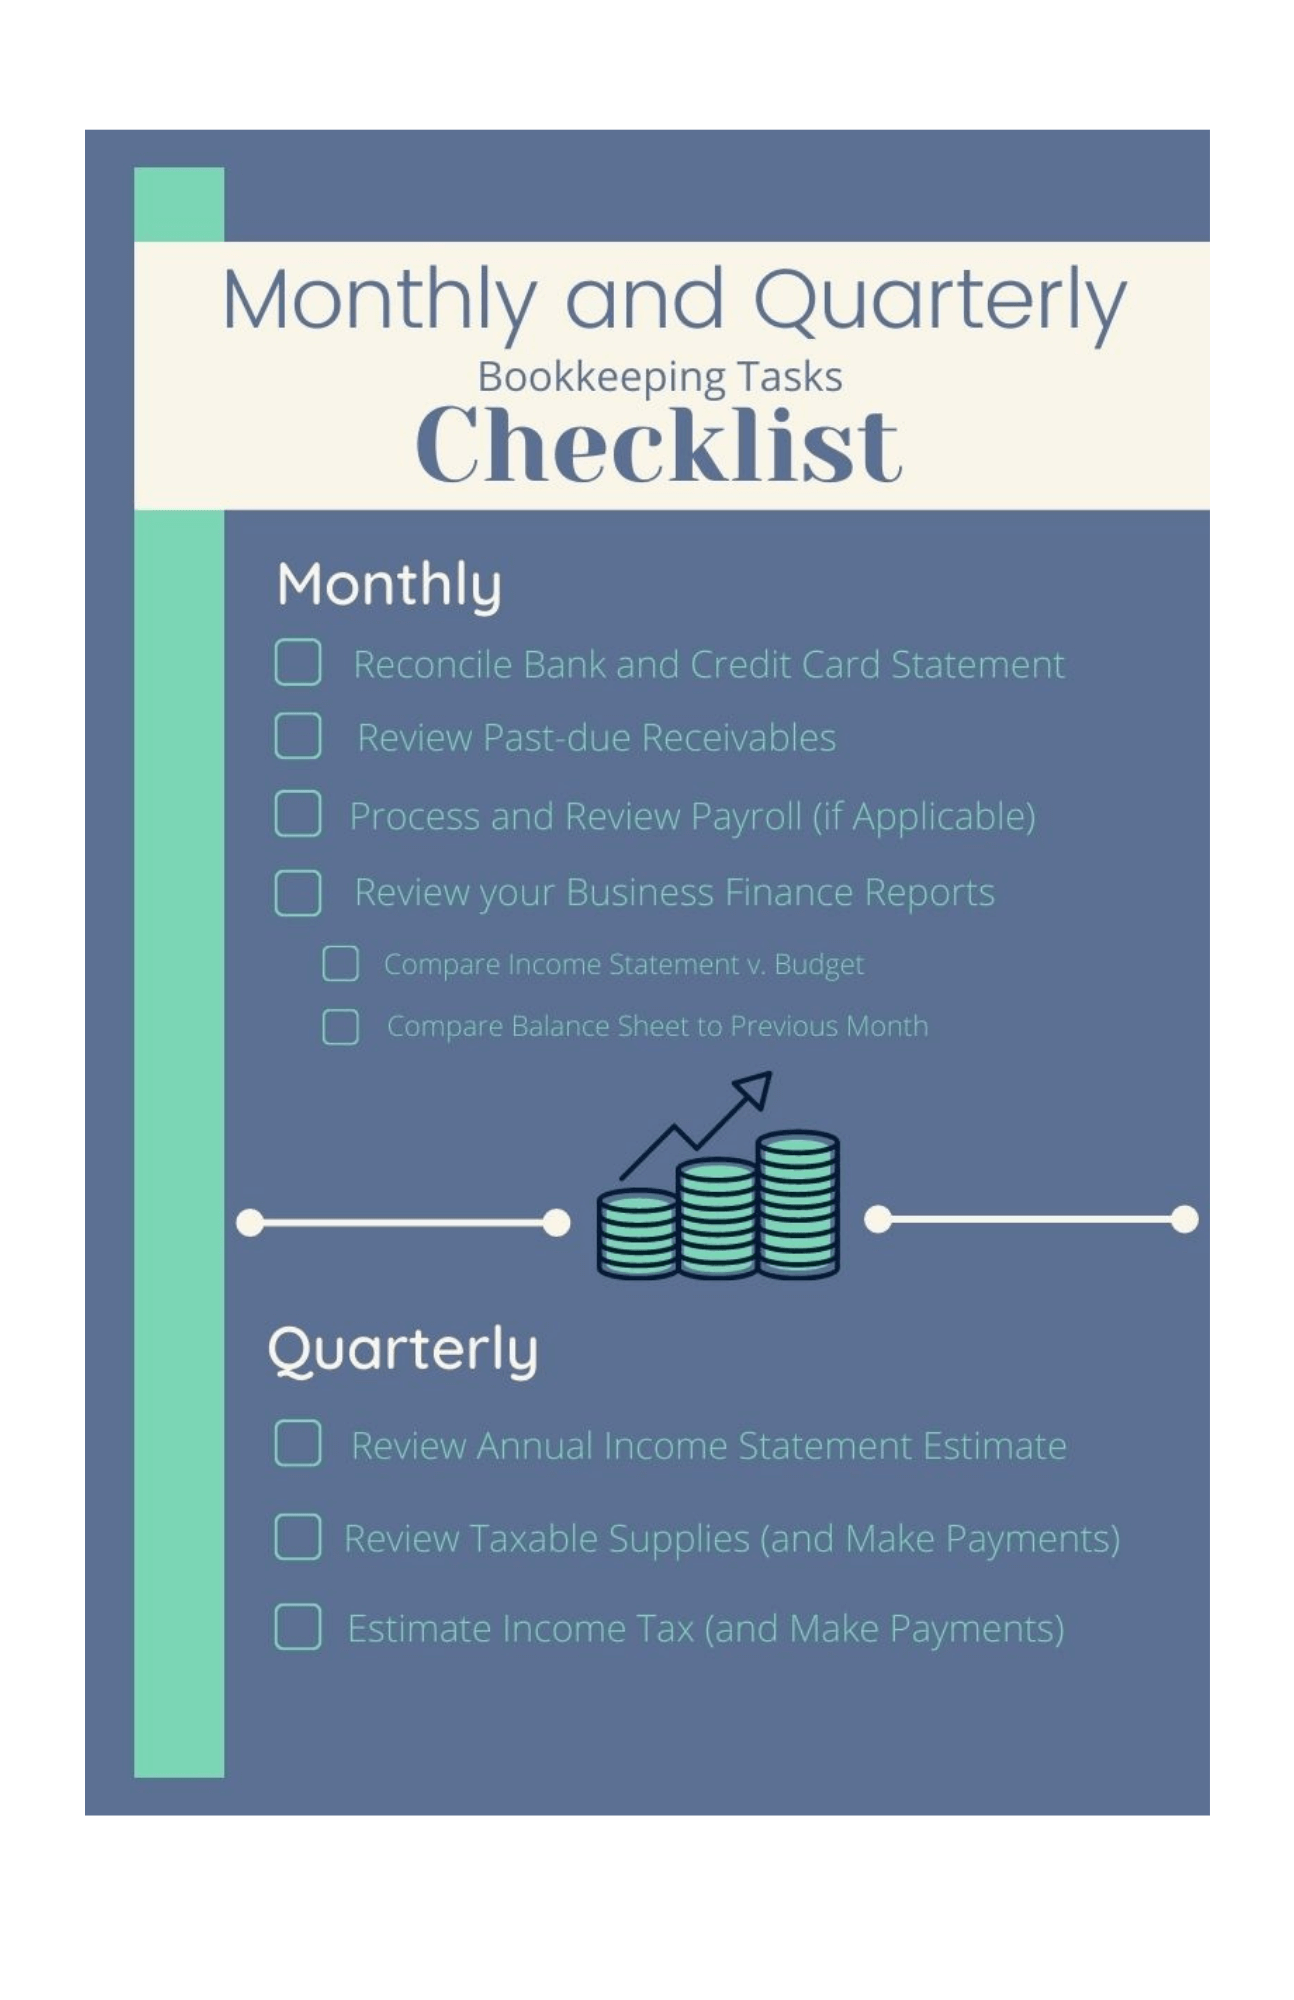 Monthly and Quarterly Bookkeeping Tasks Checklist